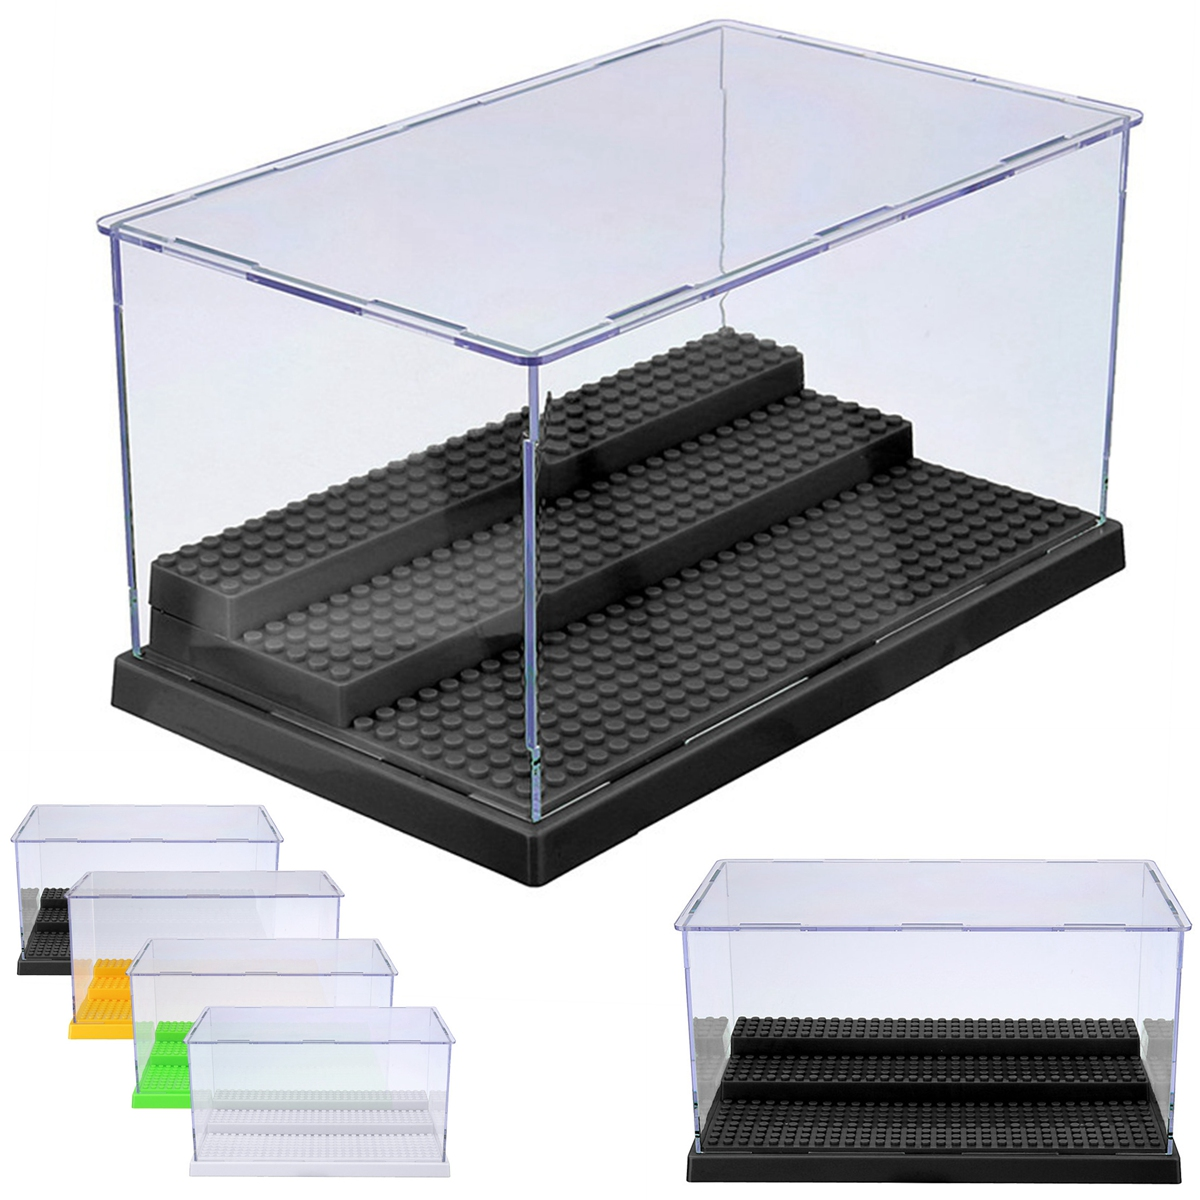 1pc 3 Steps Display Case/Box Dustproof ShowCase Gray Base For Le goings Blocks Acrylic Plastic Display Box Case 25.5X15.5X13.8cm1pc 3 Steps Display Case/Box Dustproof ShowCase Gray Base For Le goings Blocks Acrylic Plastic Display Box Case 25.5X15.5X13.8cm